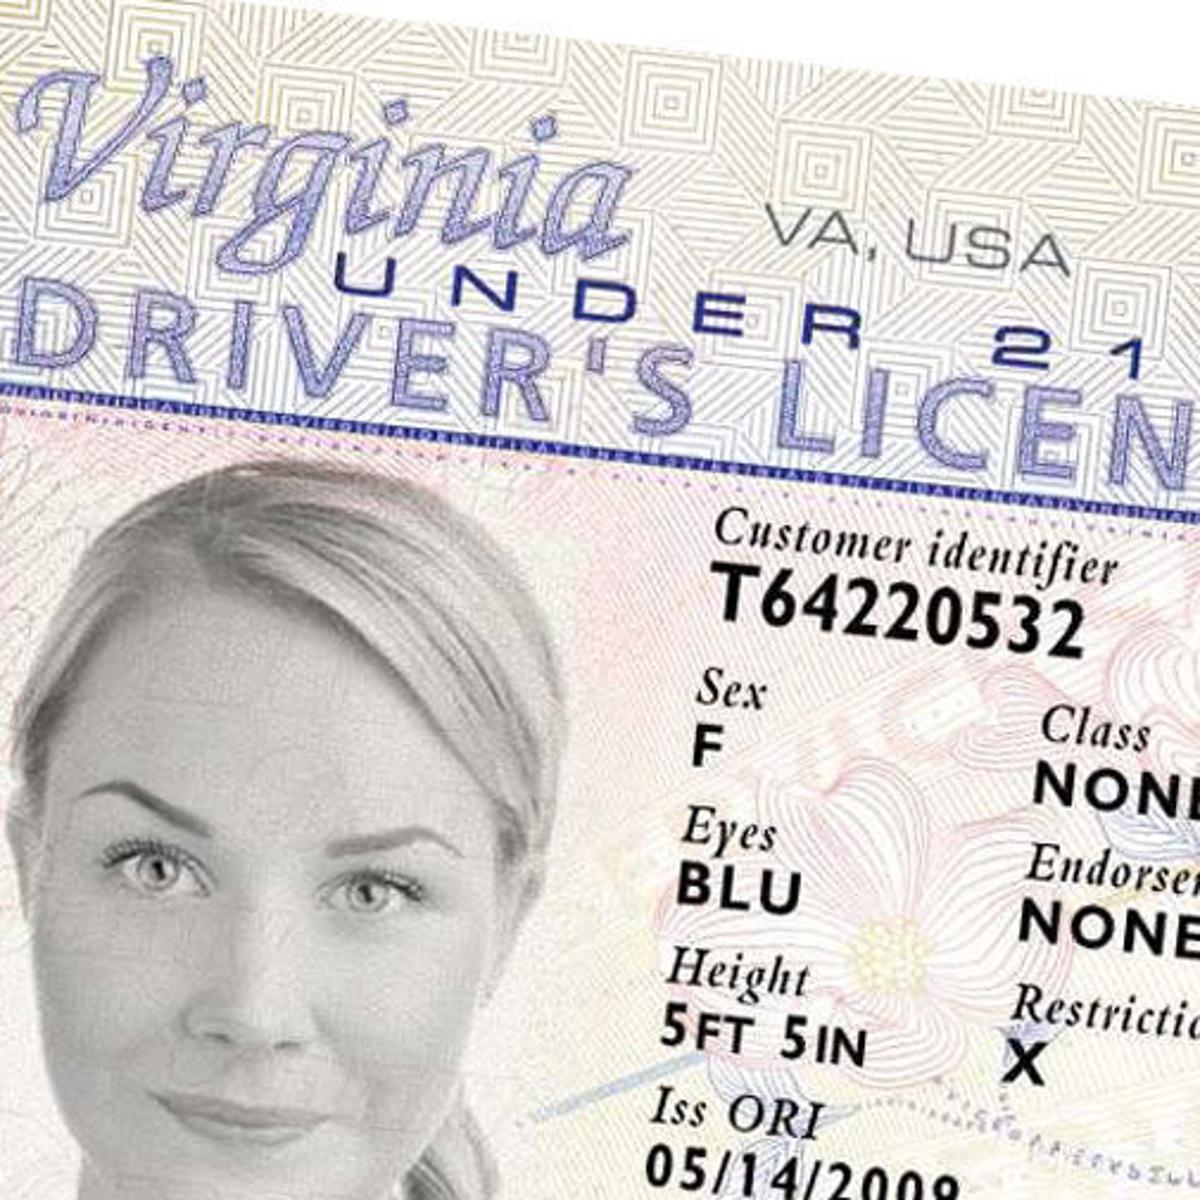 Lawsuit that claimed Va  suspended licenses in an 'unconstitutional